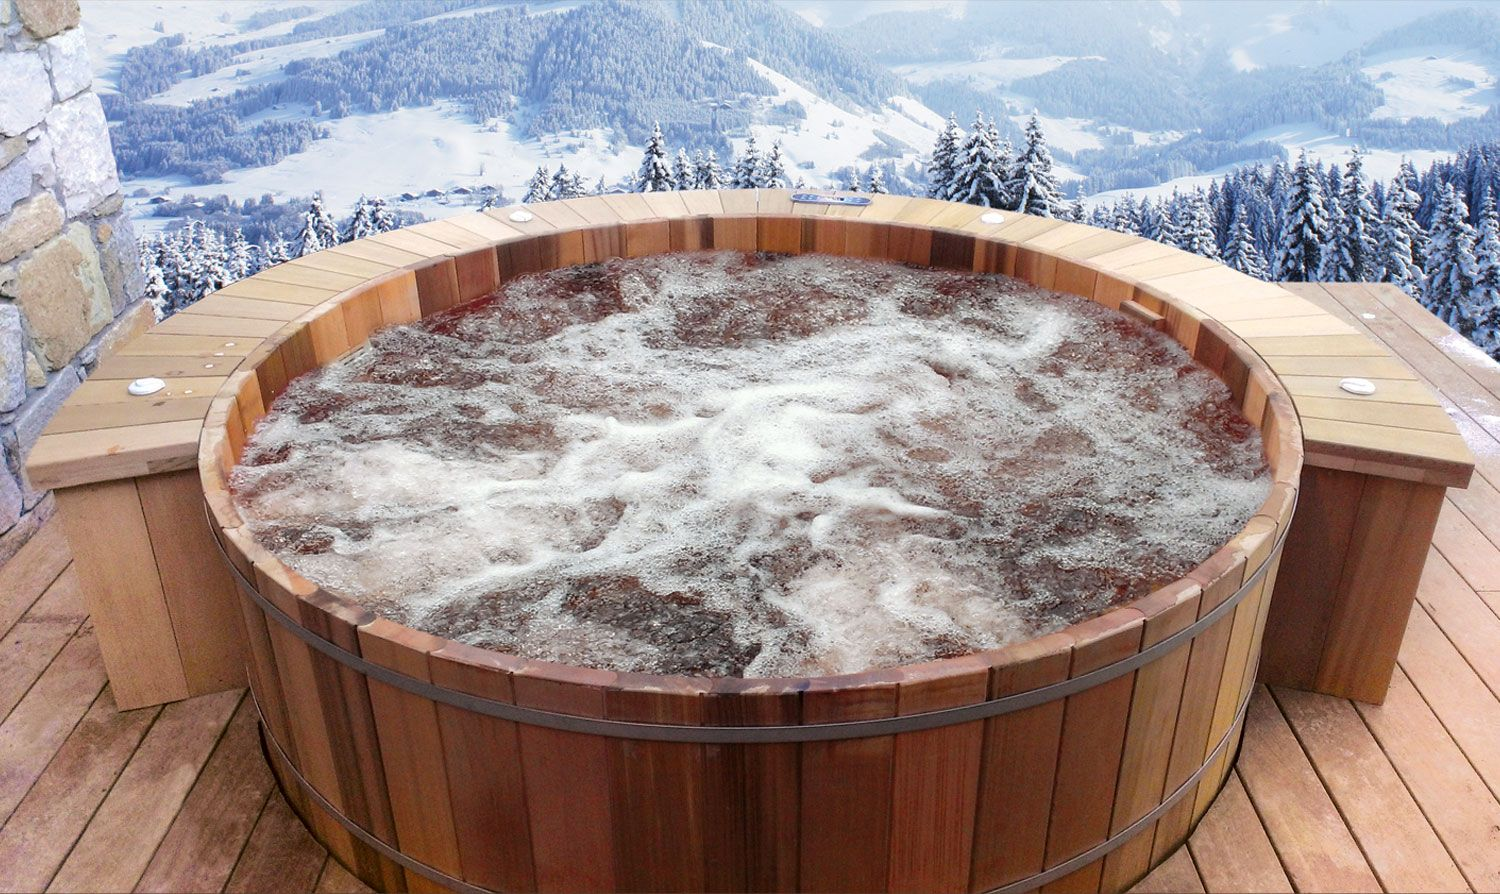 le sp cialiste du spa jacuzzi ext rieur en red cedar. Black Bedroom Furniture Sets. Home Design Ideas